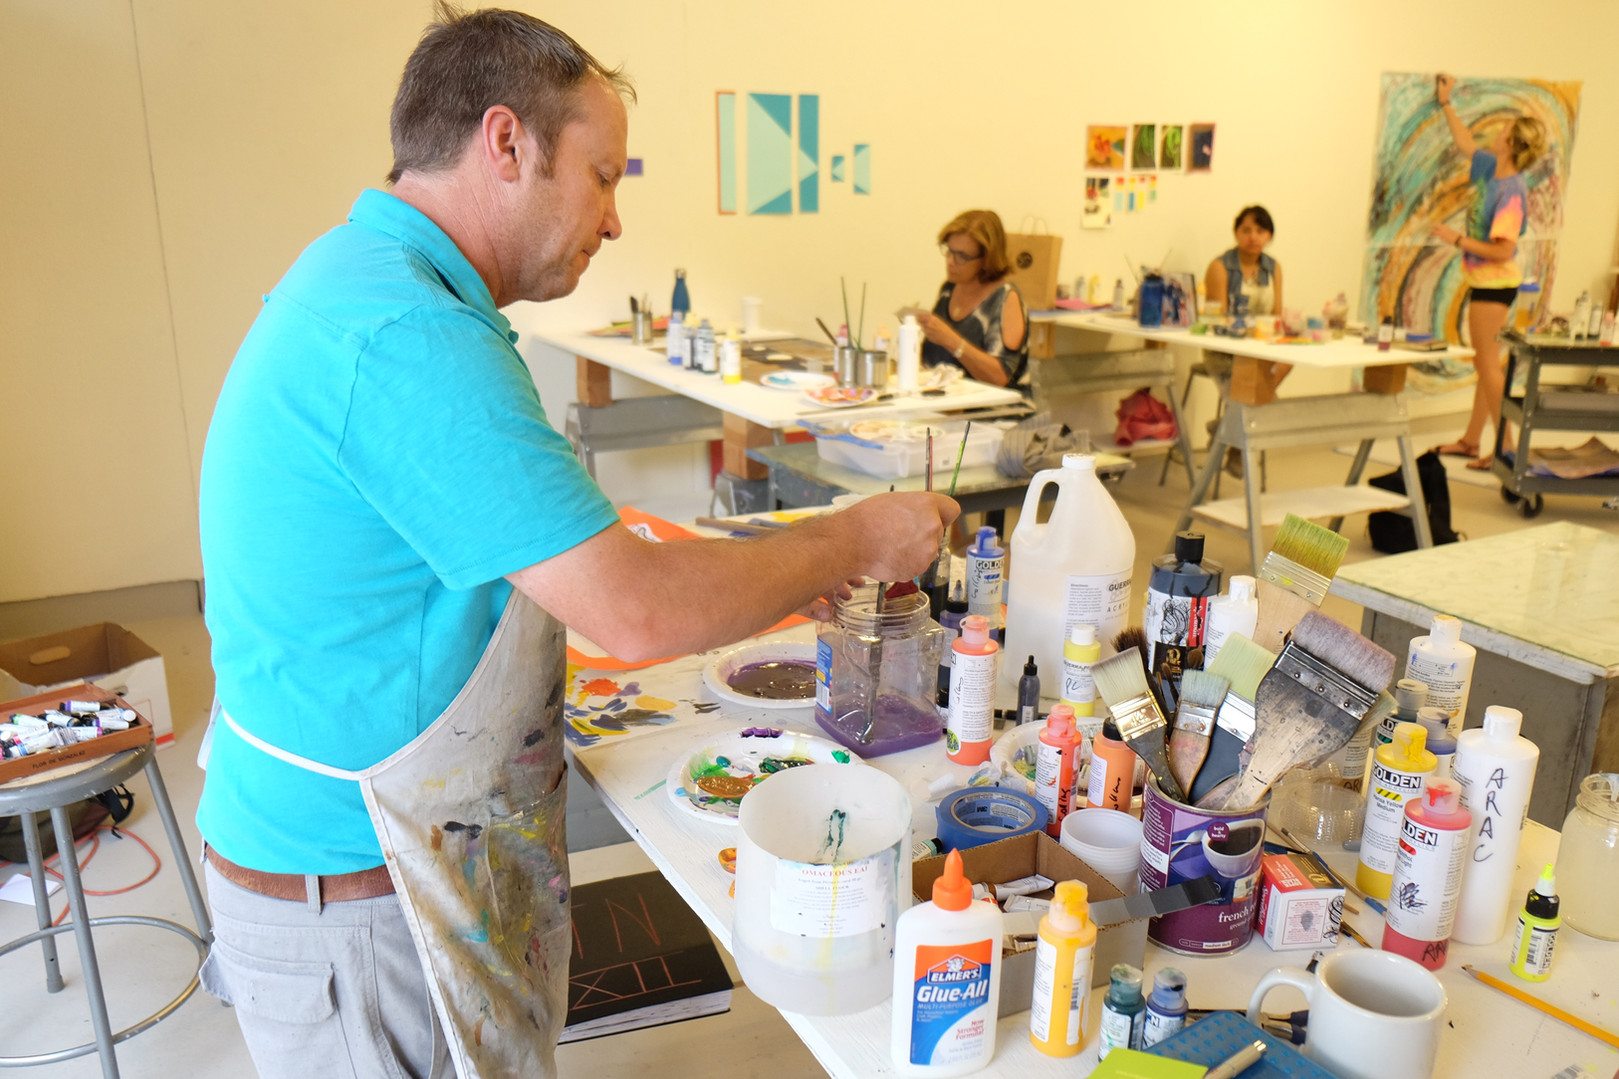 Painting Workshop: Color With Purpose at Anderson Ranch Art Center, 2016